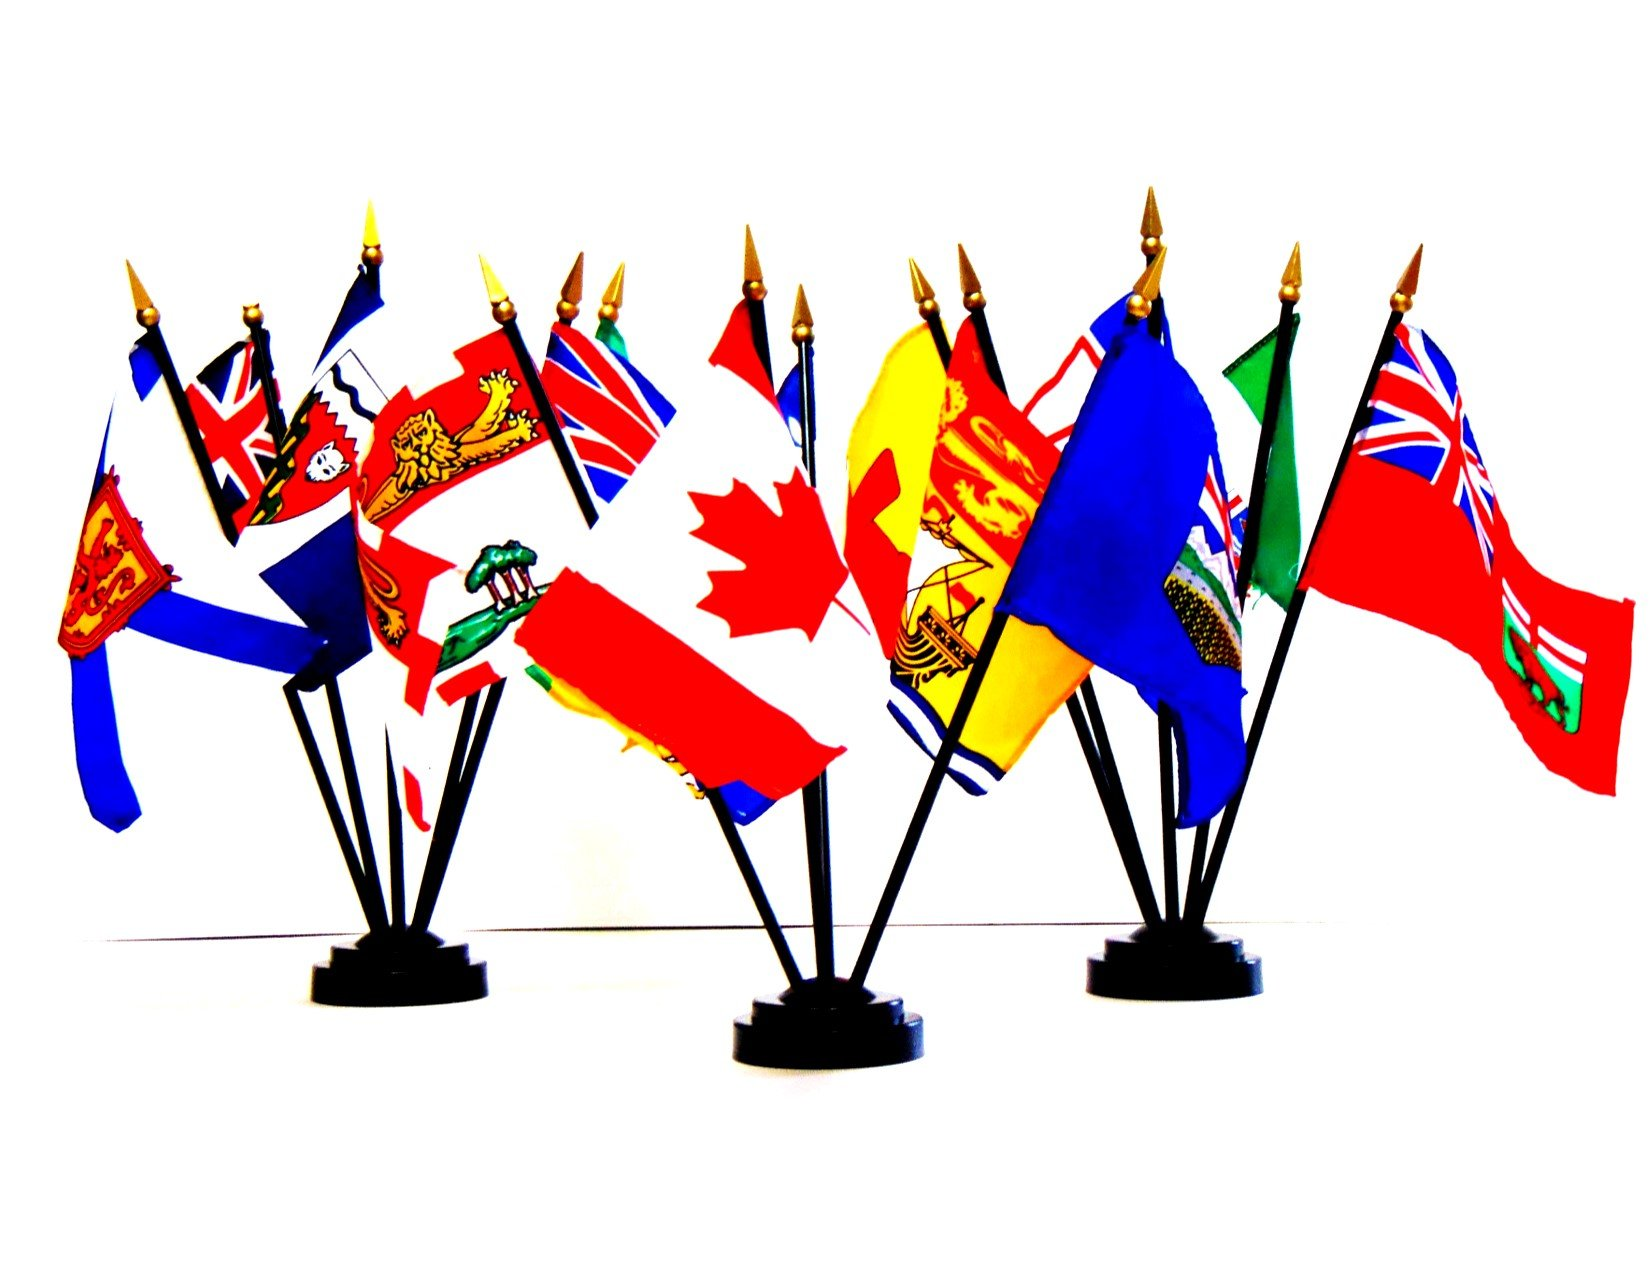 CANADIAN PROVINCE and TERRITORY FLAGS- SET of 14 Rayon 4''x6'' Flags with three 5-hole bases, 4x6 Miniature Desk & Table Flags, Small Mini Stick Flags